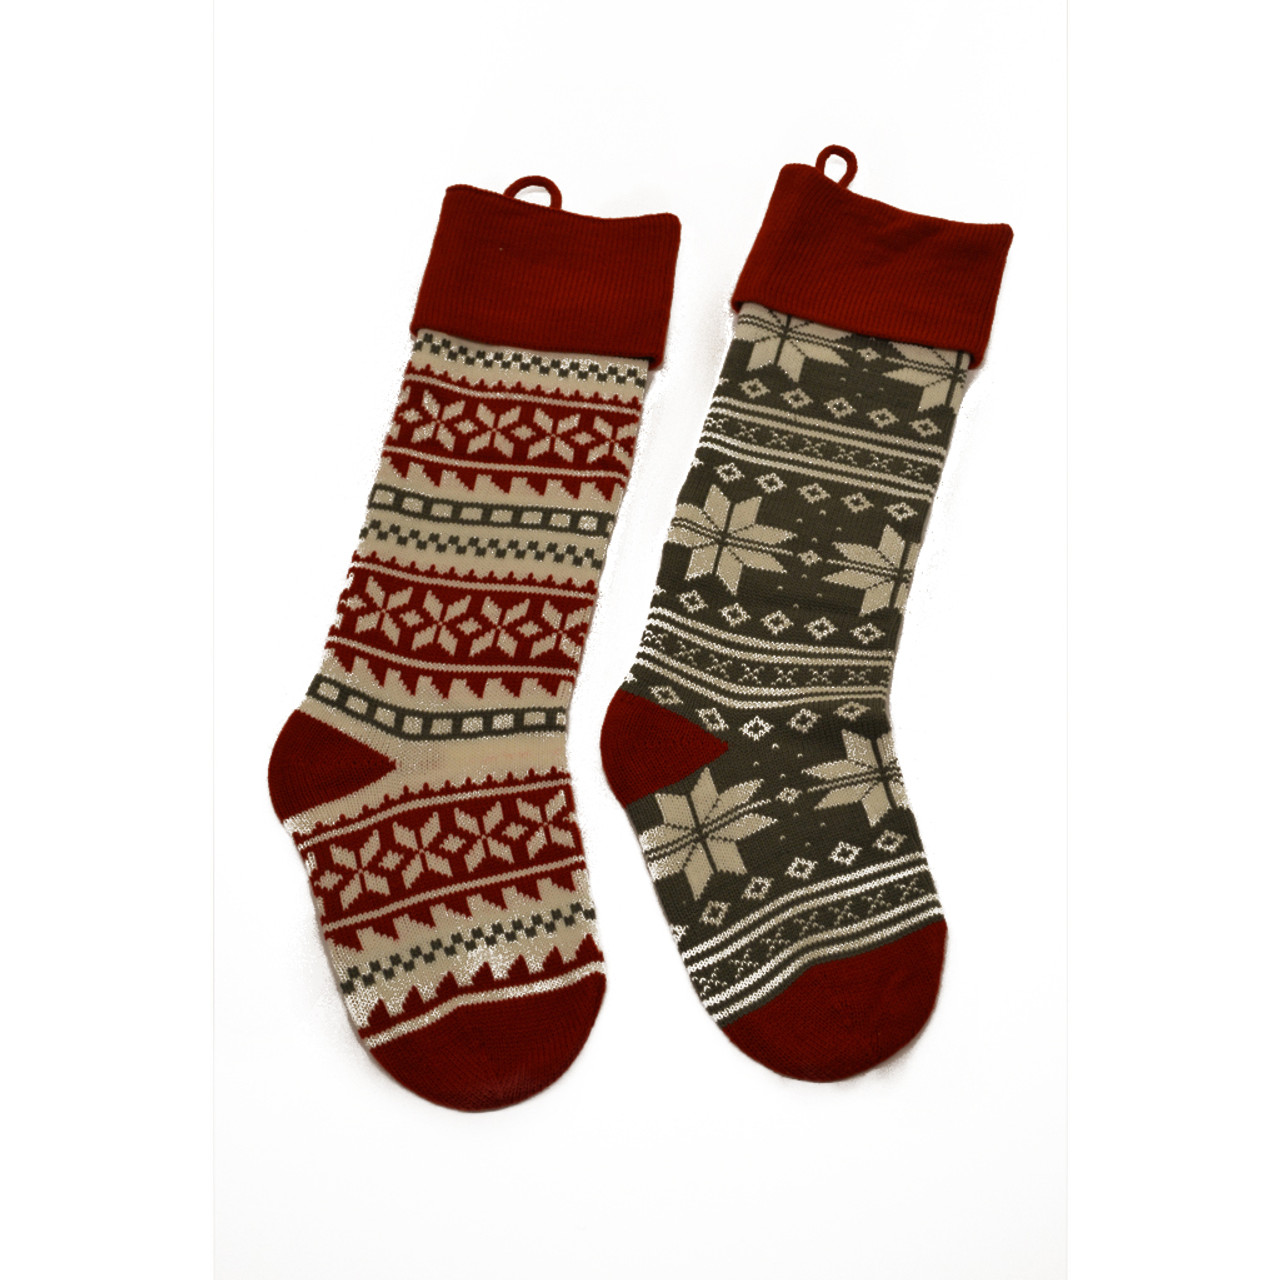 Knit Christmas Stockings.Traditional Red And Green Knit Christmas Stocking Set Of Two